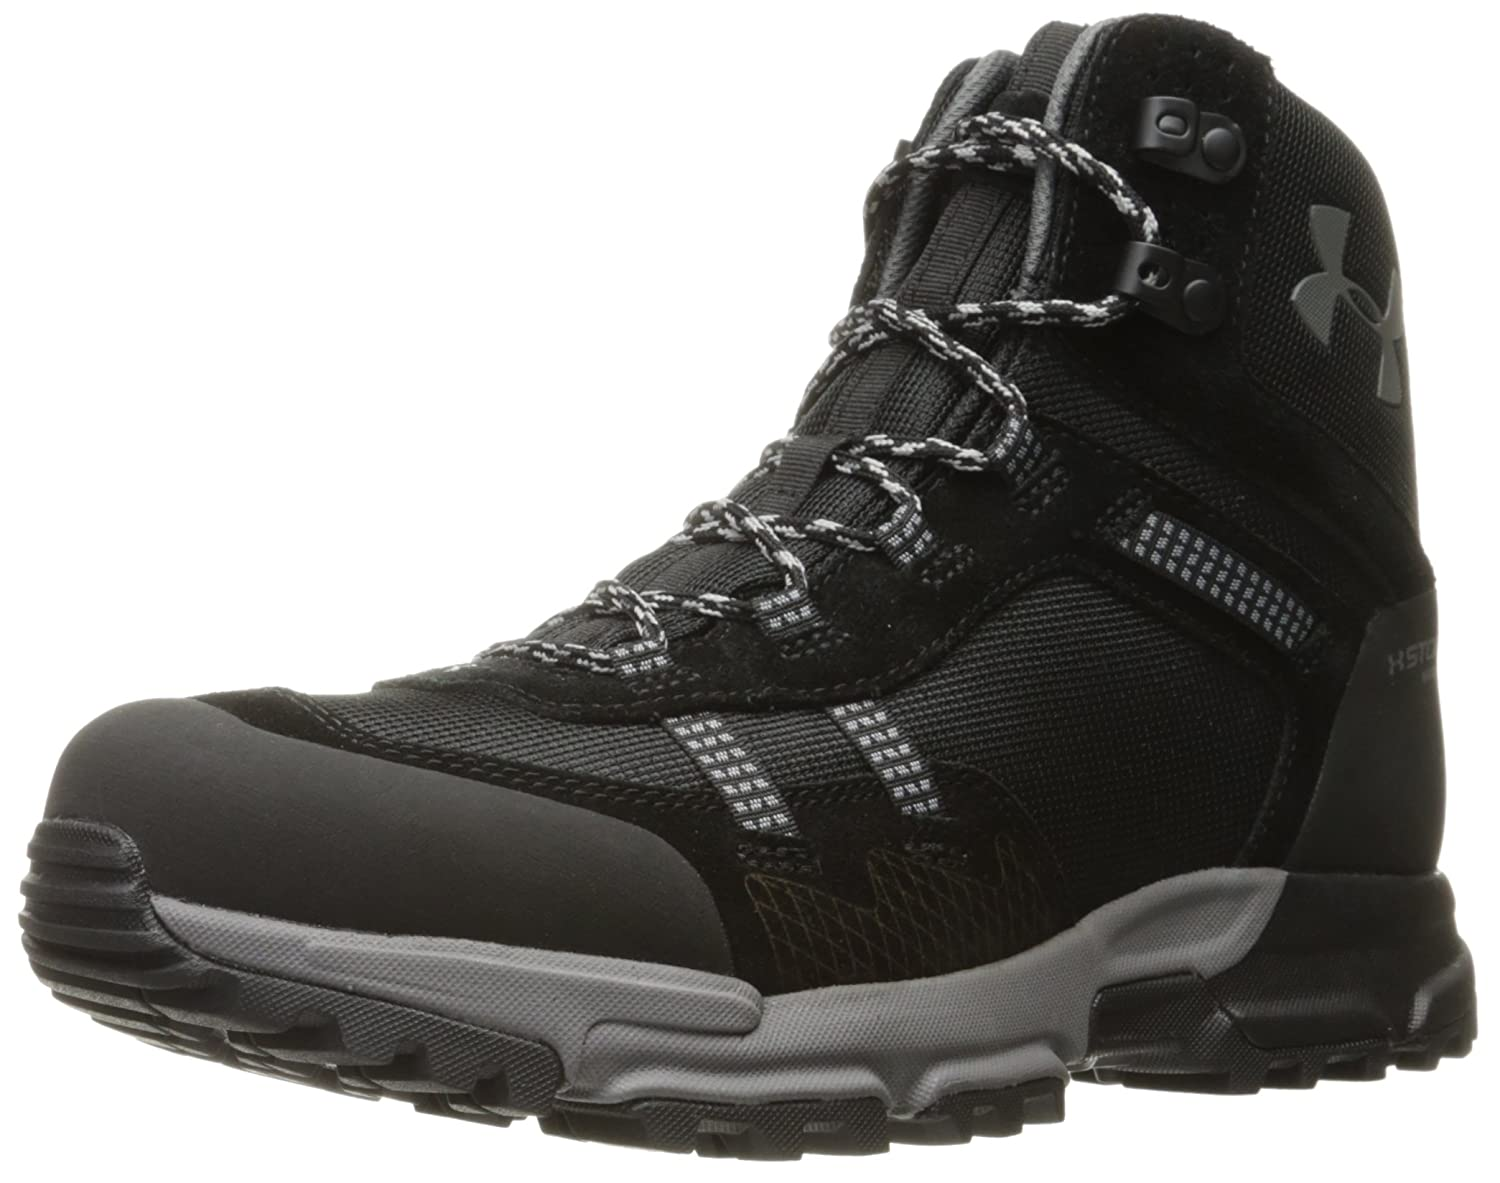 Under Armour Mens Post Canyon Mid Waterproof Hiking Boot